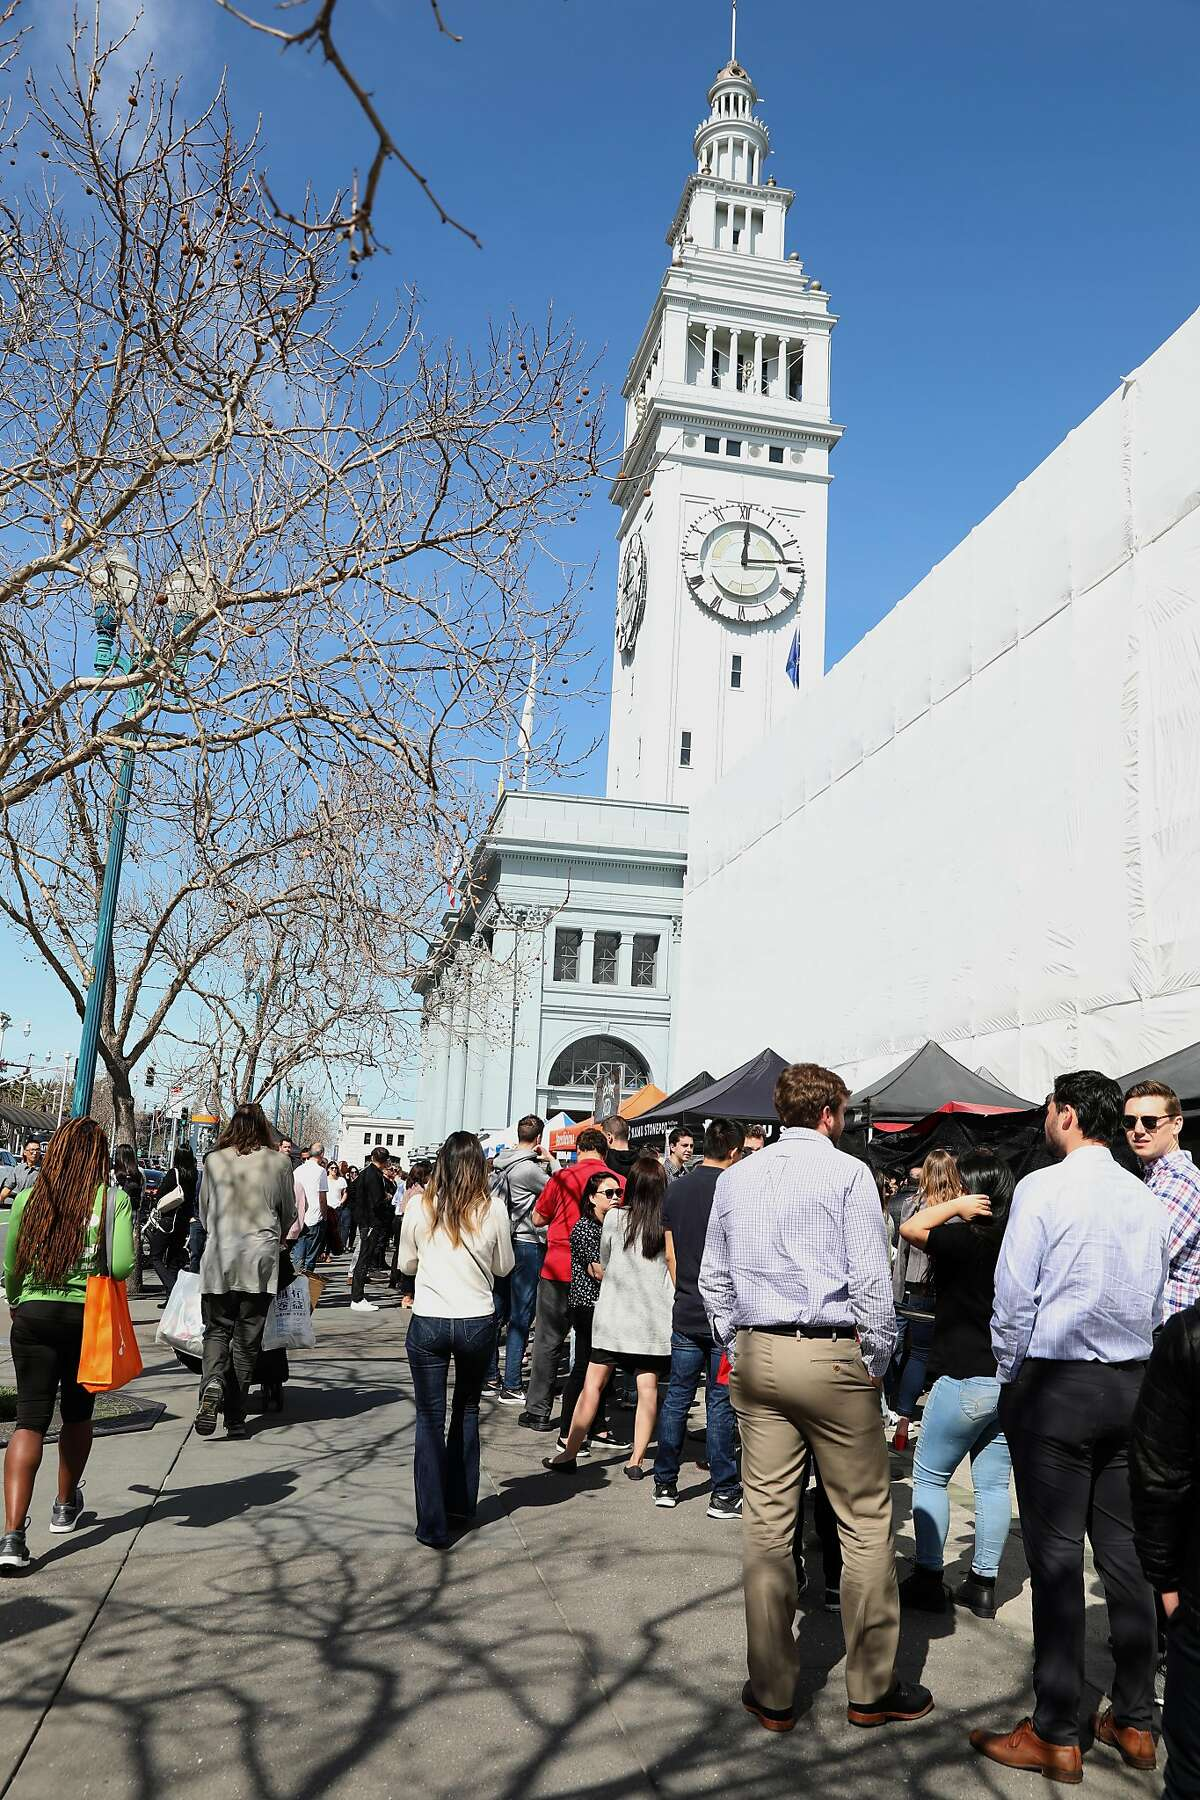 Lunch goers seen in front of the Ferry Building on Thursday, Feb. 27, 2020, in San Francisco, Calif.